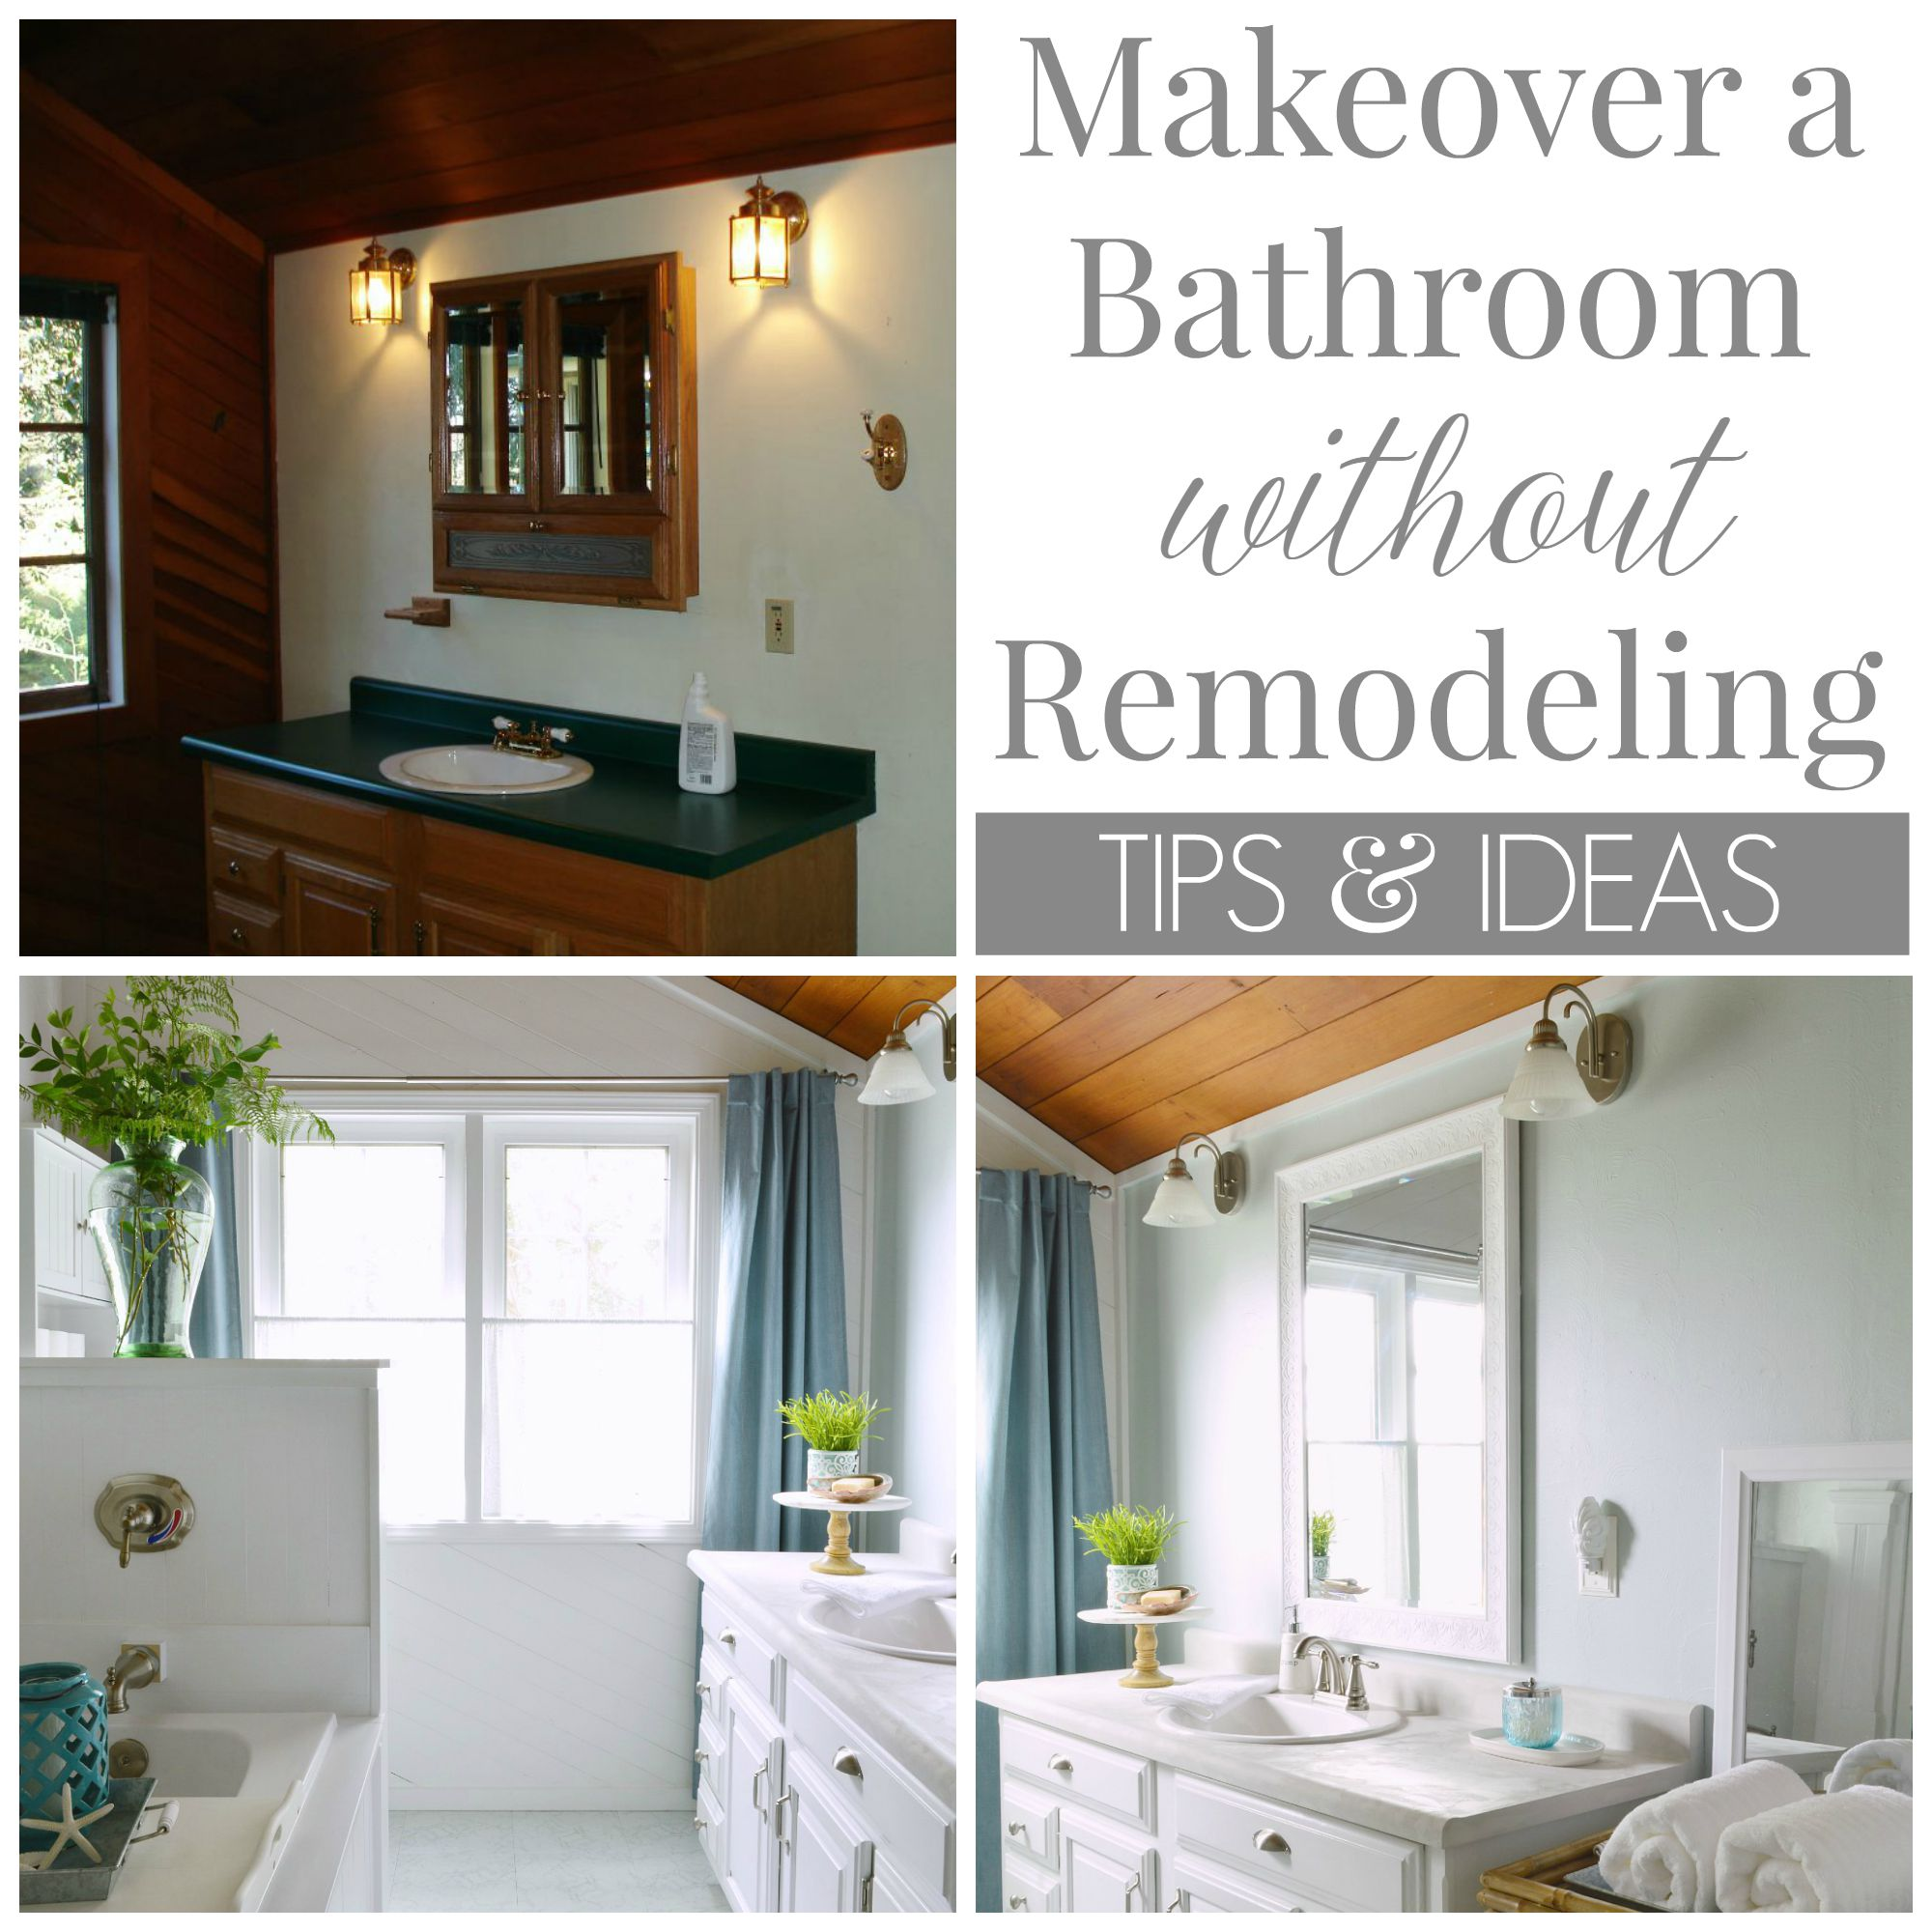 Bathroom Refresh Decoration how to makeover a bathroom without remodeling